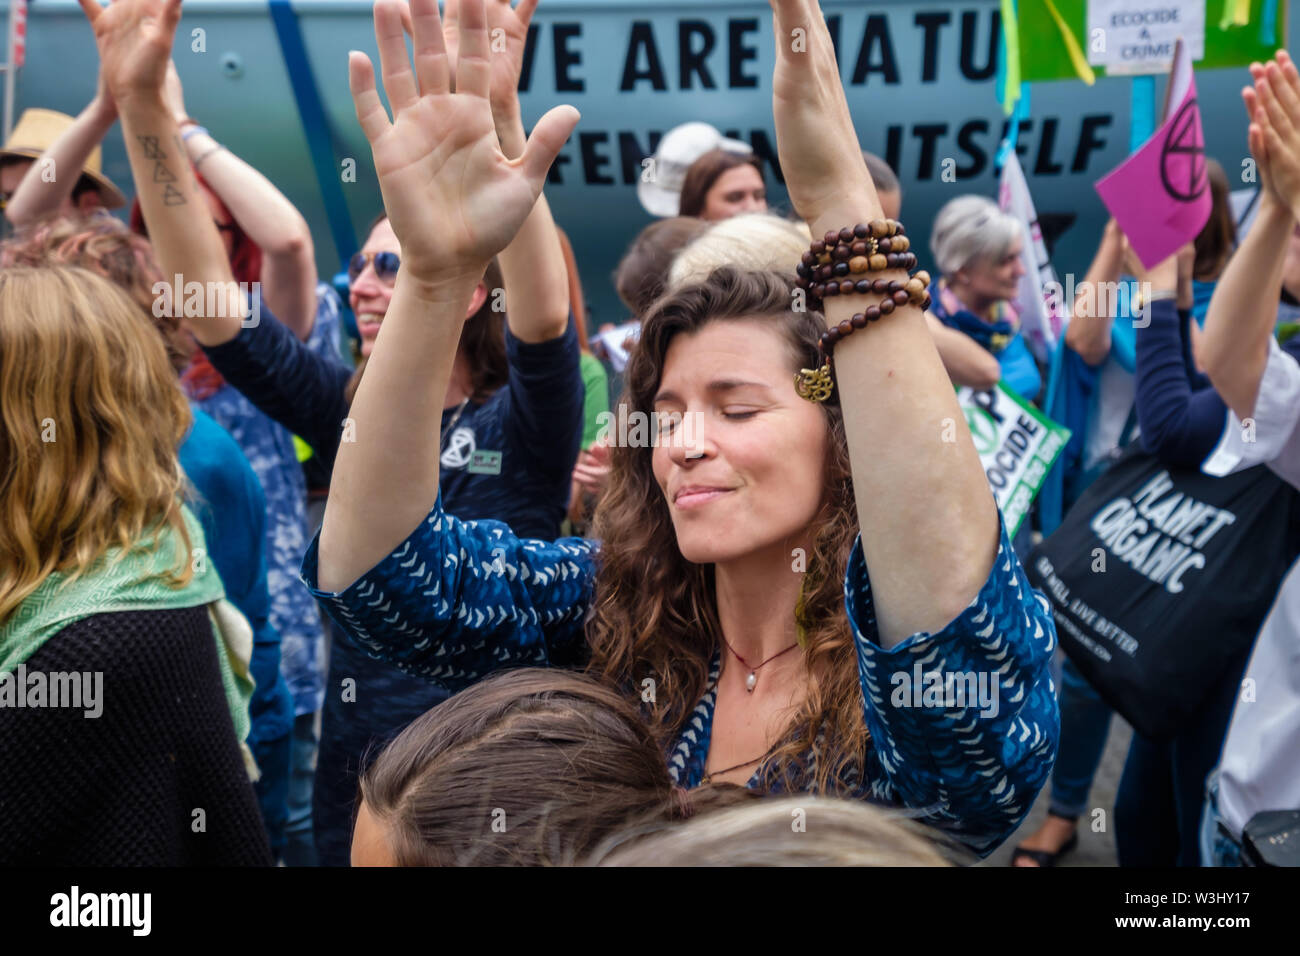 London, UK. 15th July 2019. People close their eyes and raise their hands in a ceremony against ecocide. Extinction Rebellion begins another series of protests in five major cities against the criminal inaction by the government on climate and ecological collapse. The protesters brought a yacht named after Polly Higgins who fought for years for an Ecocide Law to the Royal Courts of Justice and continued her fight blocking the Strand all day with performances, discussions, speeches, music and ceremonies in front of the yacht. Peter Marshall/Alamy Live News - Stock Image